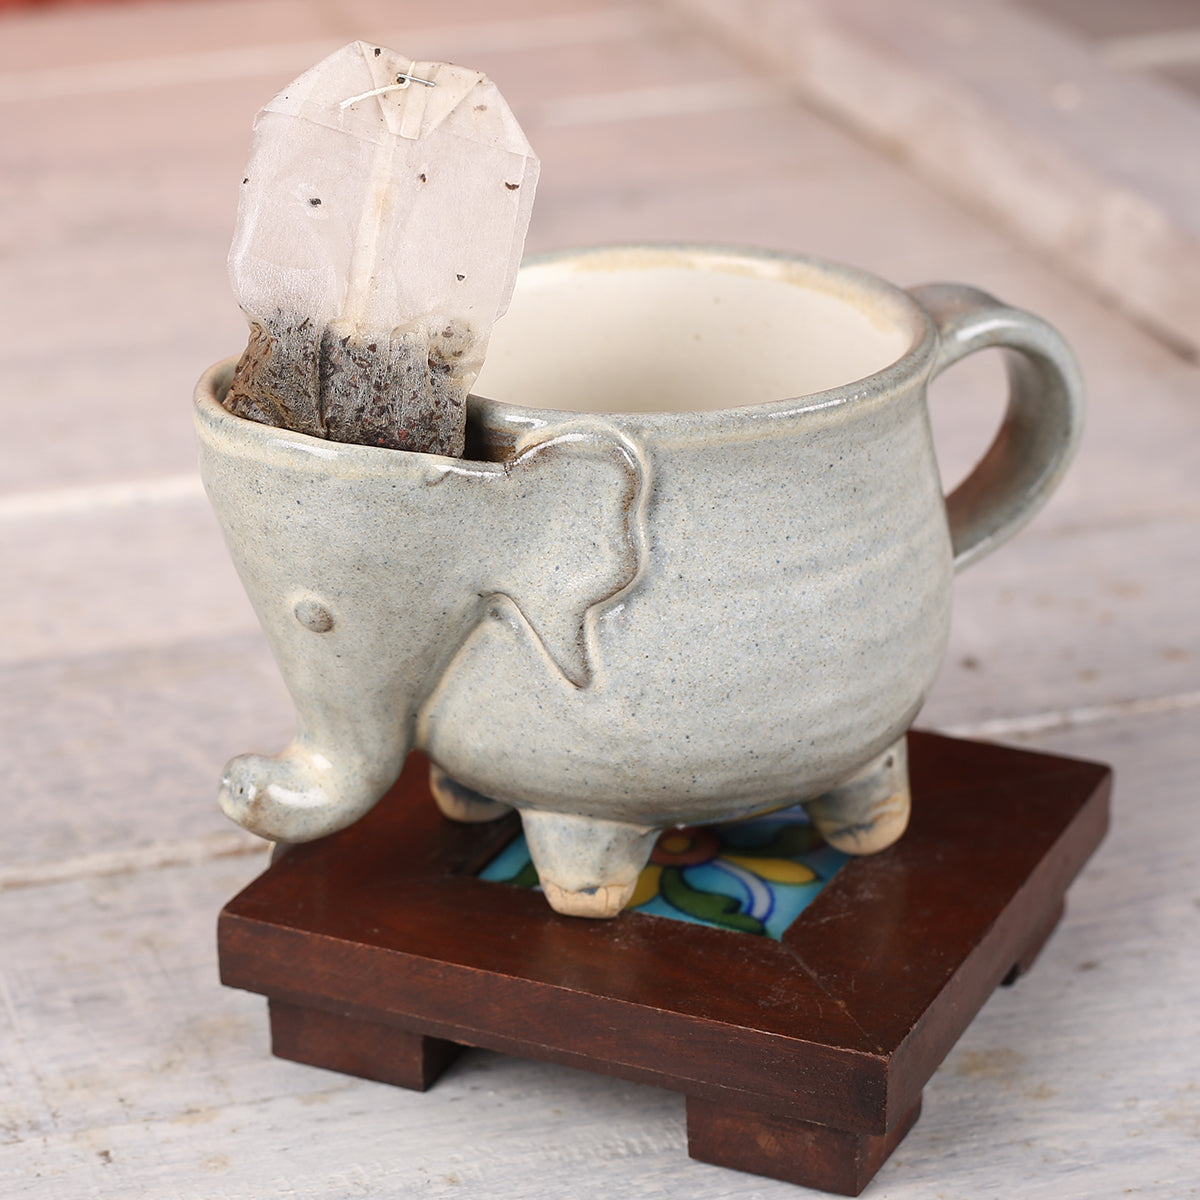 Grey Elephant Handmade Ceramic Cup from Auroville